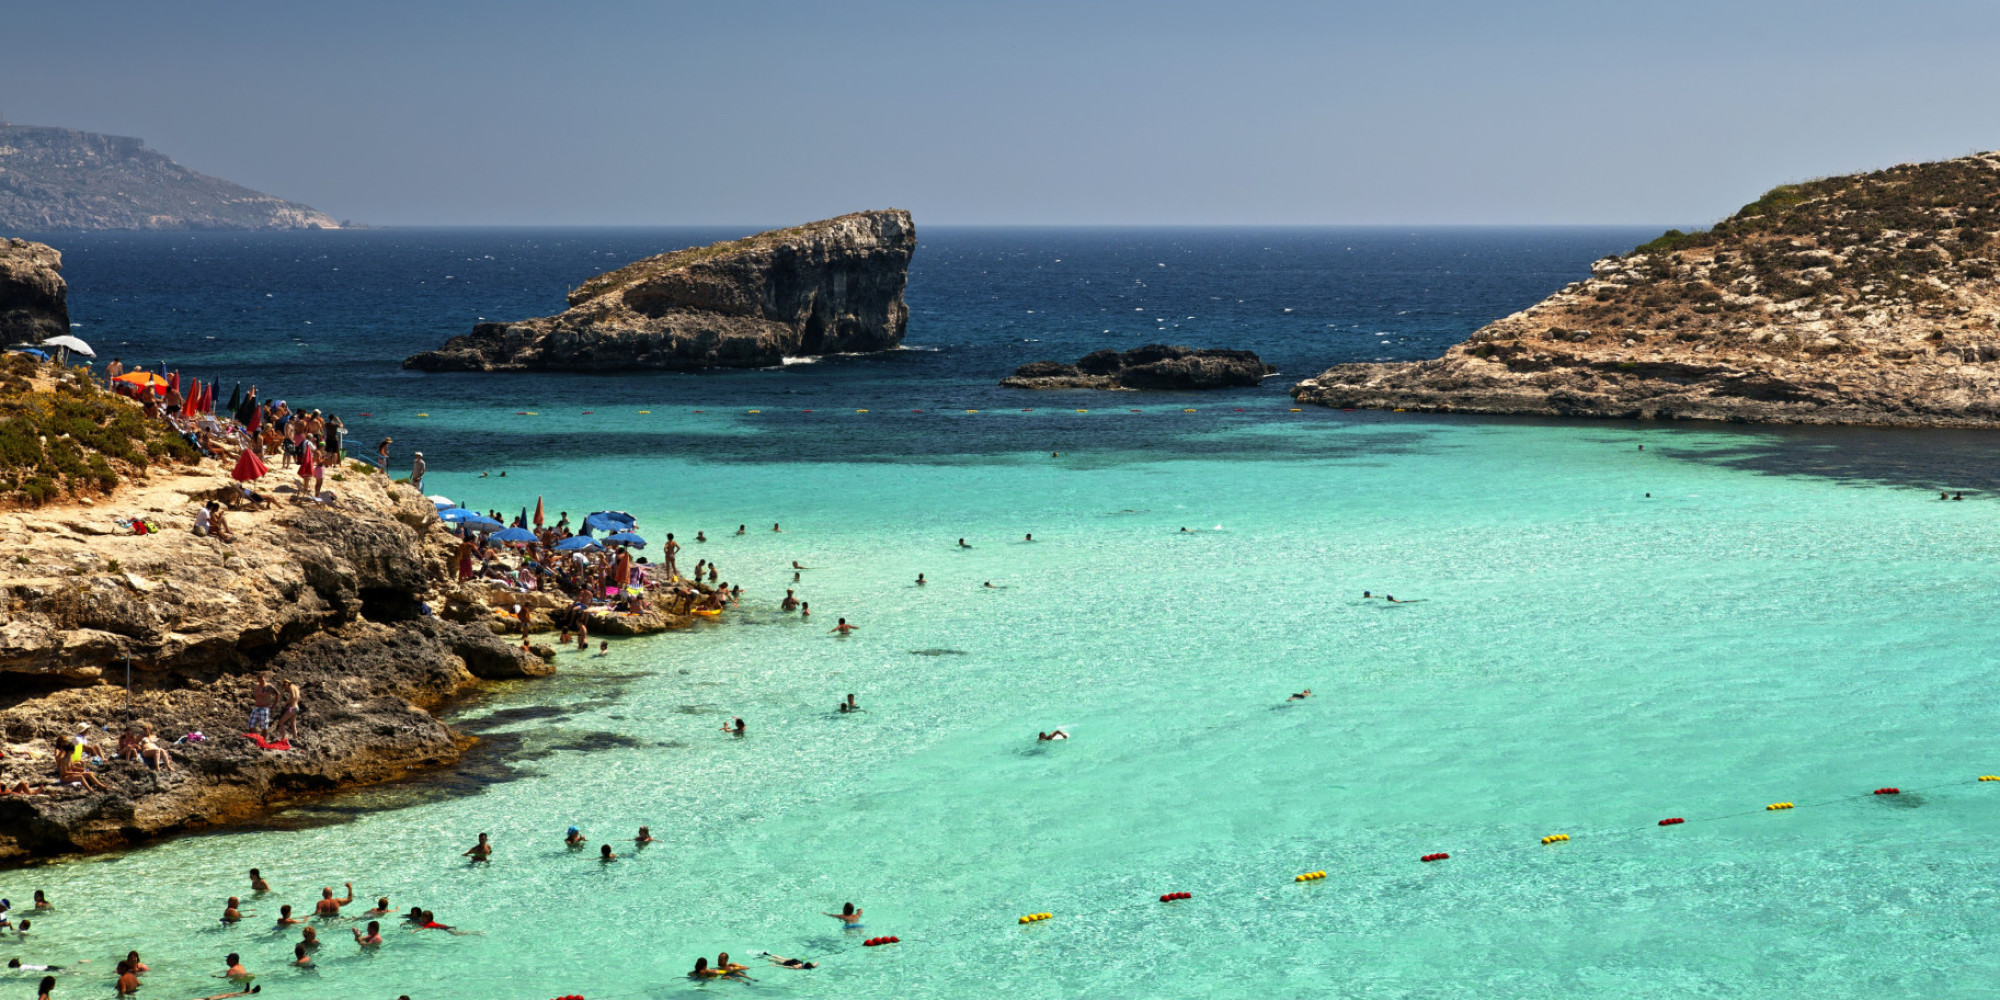 How To Get To Comino Island From Malta